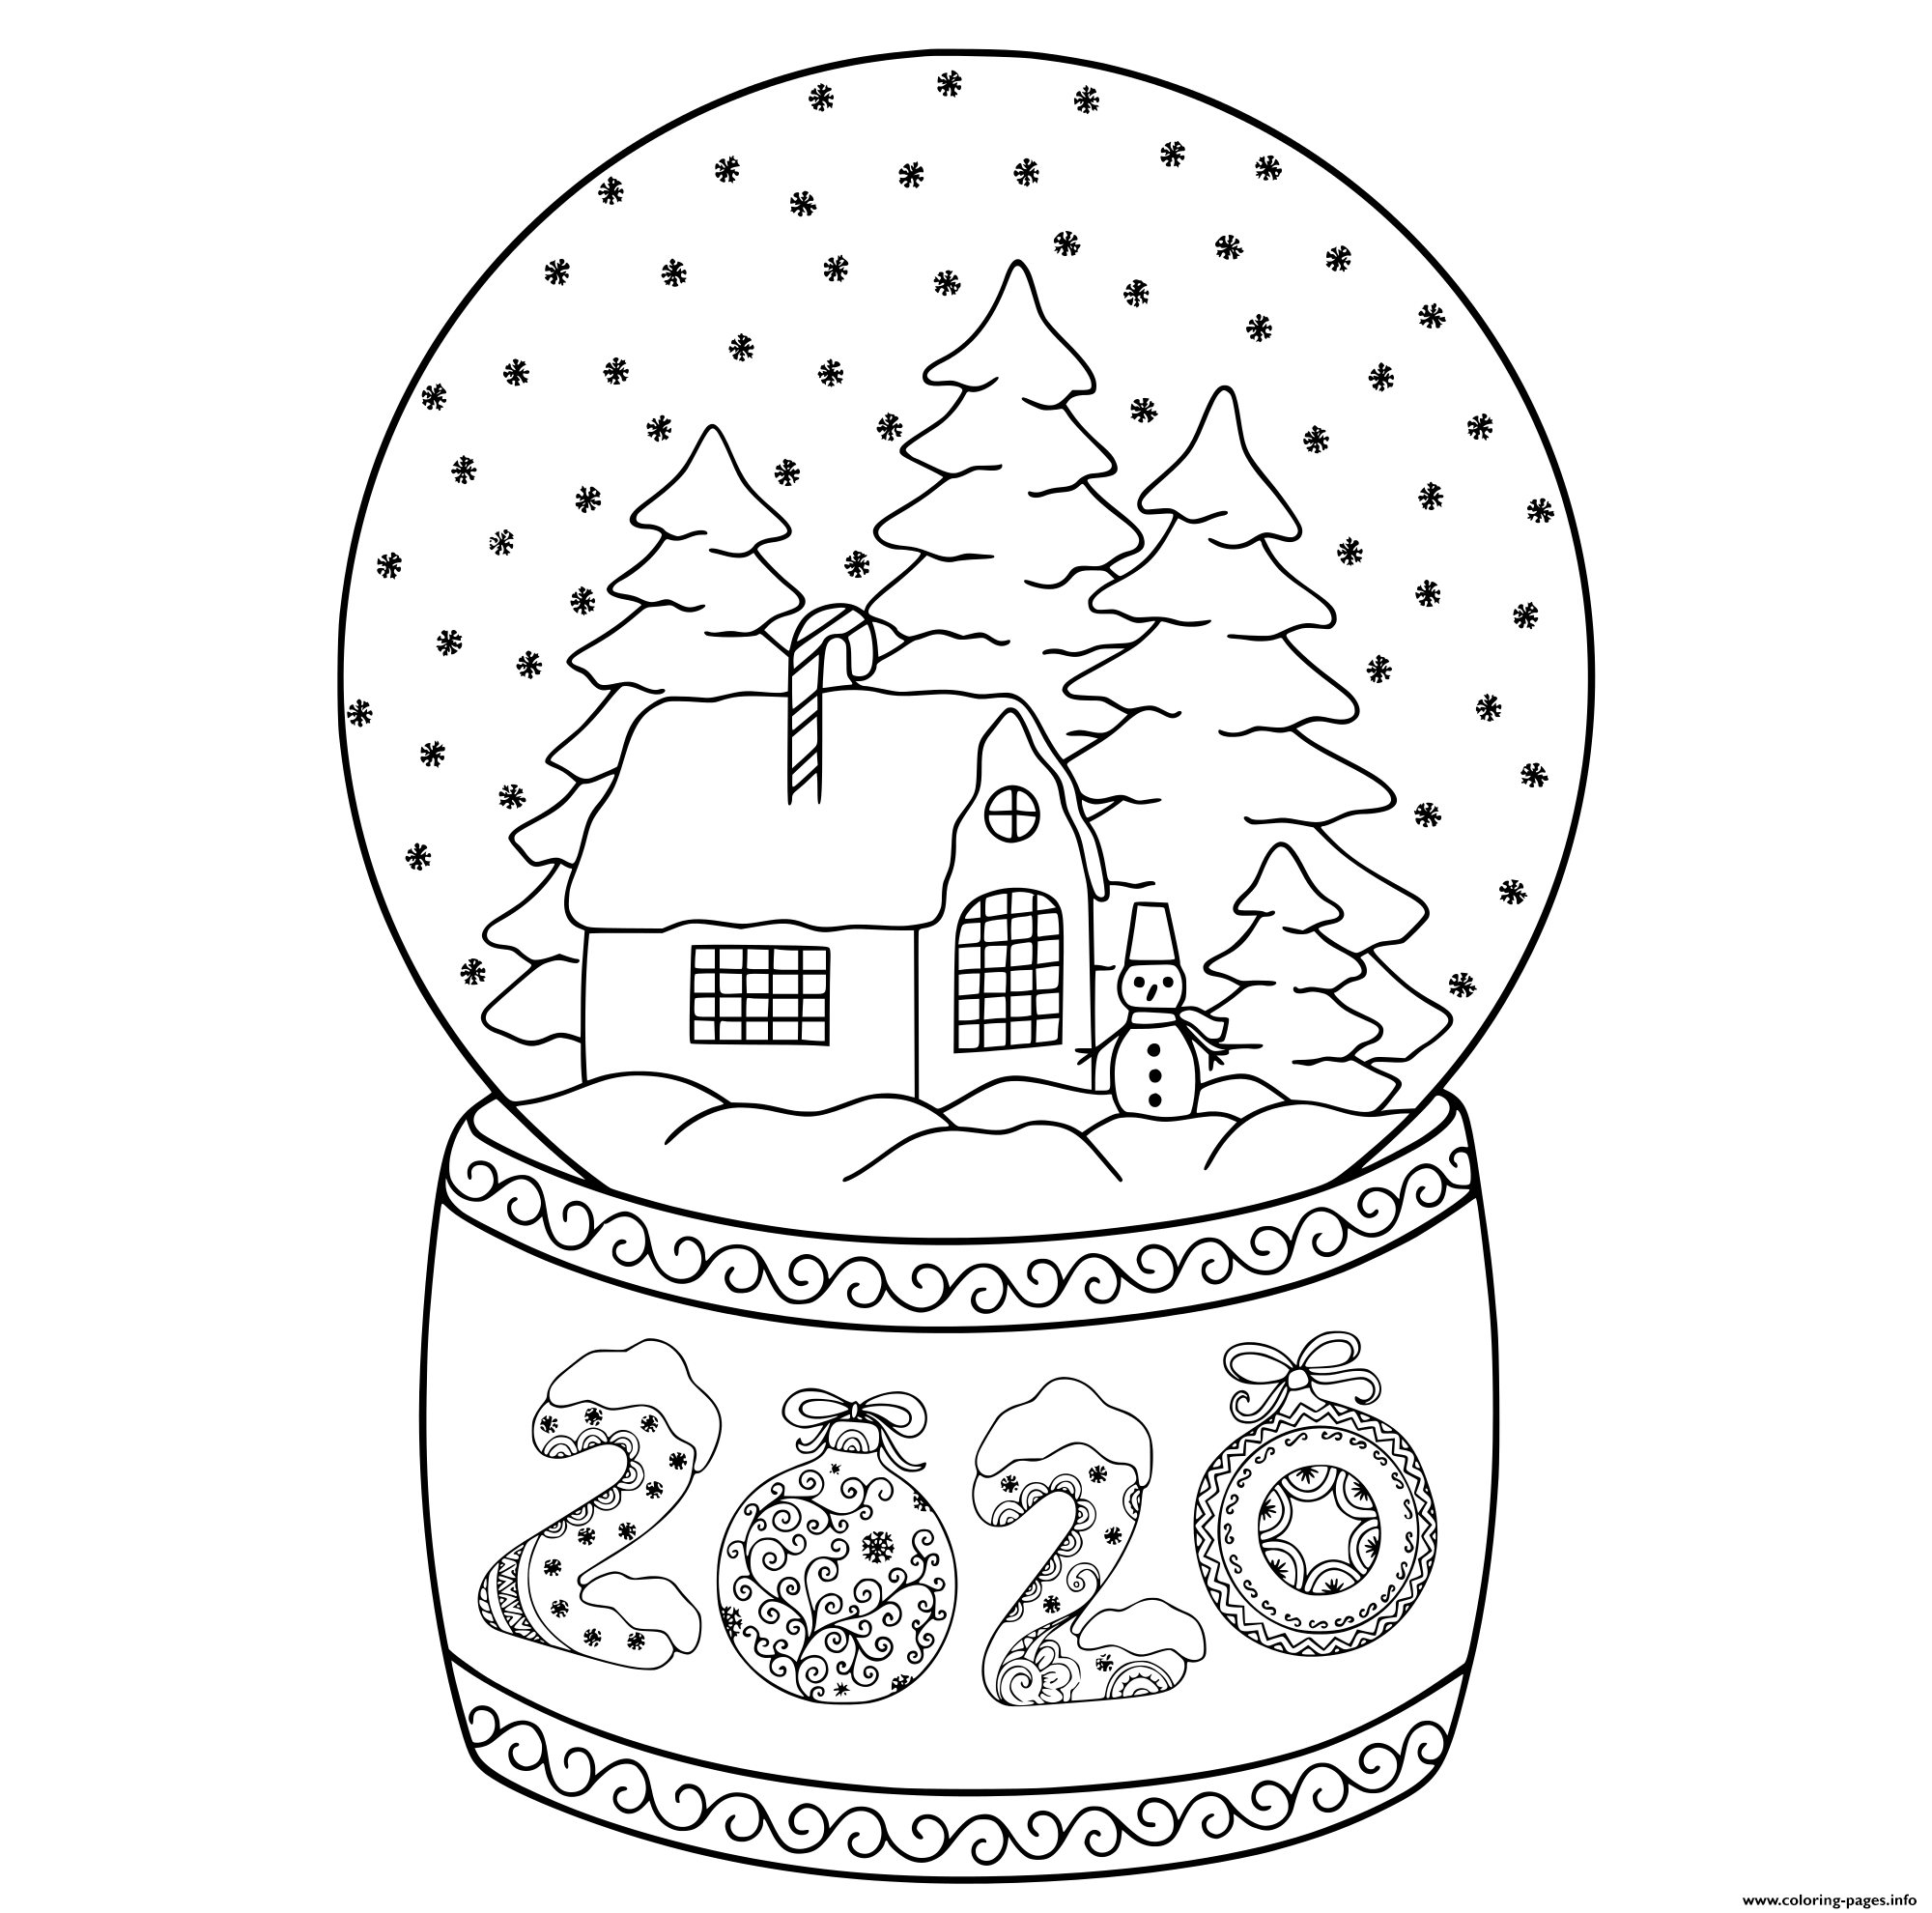 Pin de Nancy Holcomb en Coloring pages | Mandalas navideñas ... | 1980x2000